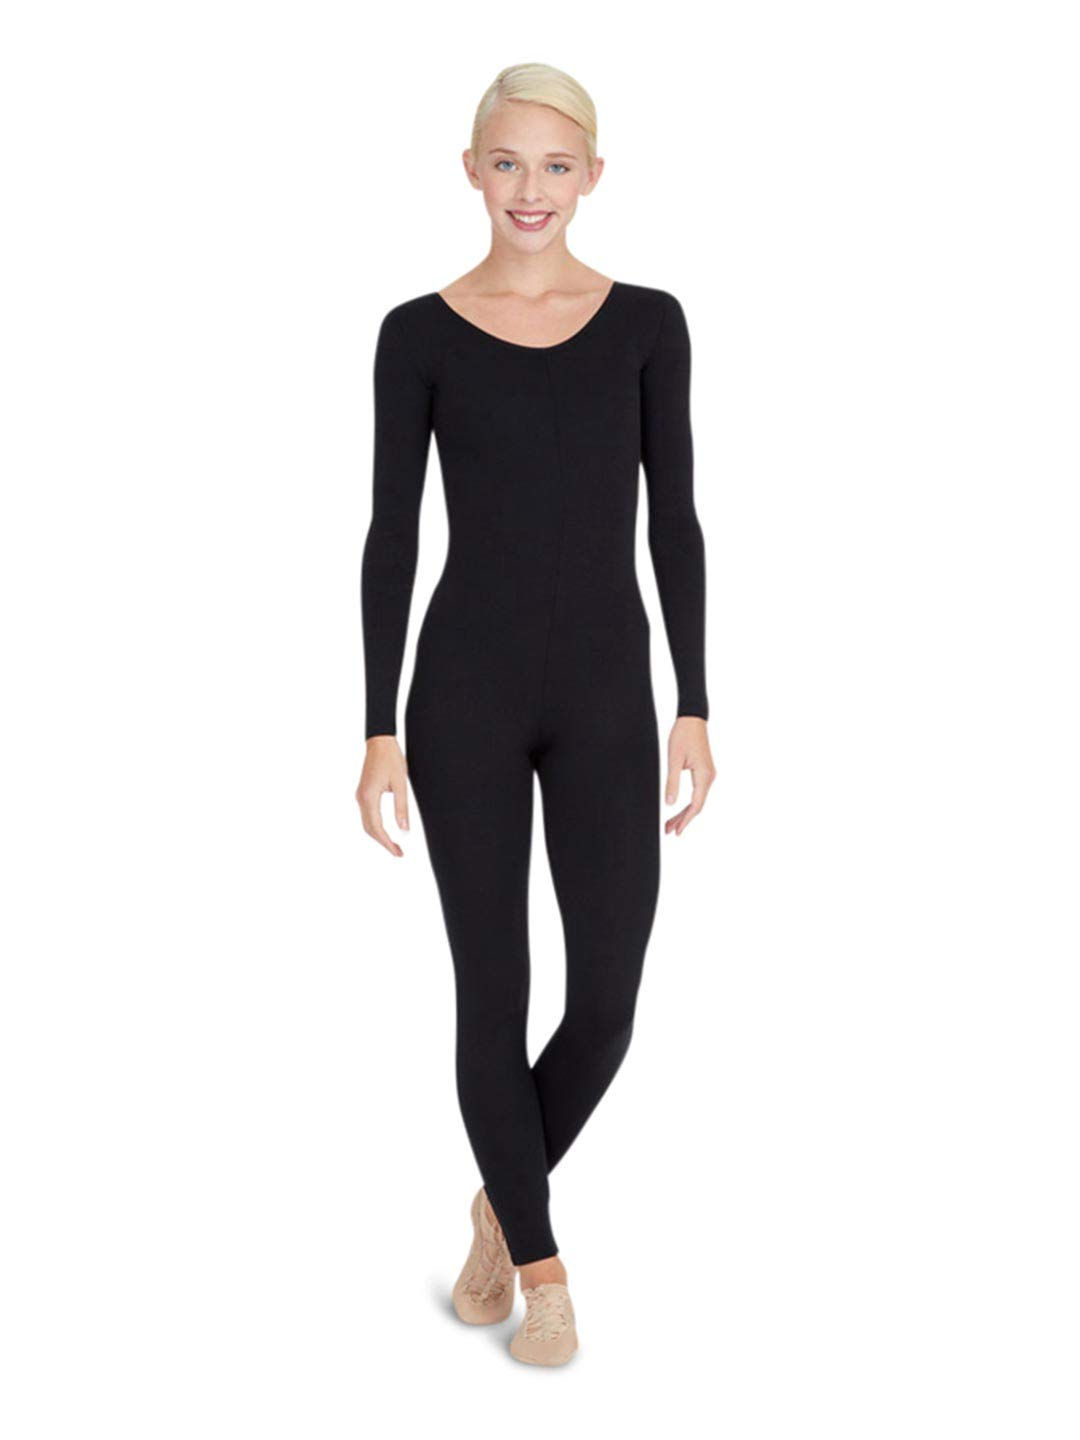 Capezio Women's Long Sleeve Unitard,Black,Small by Capezio